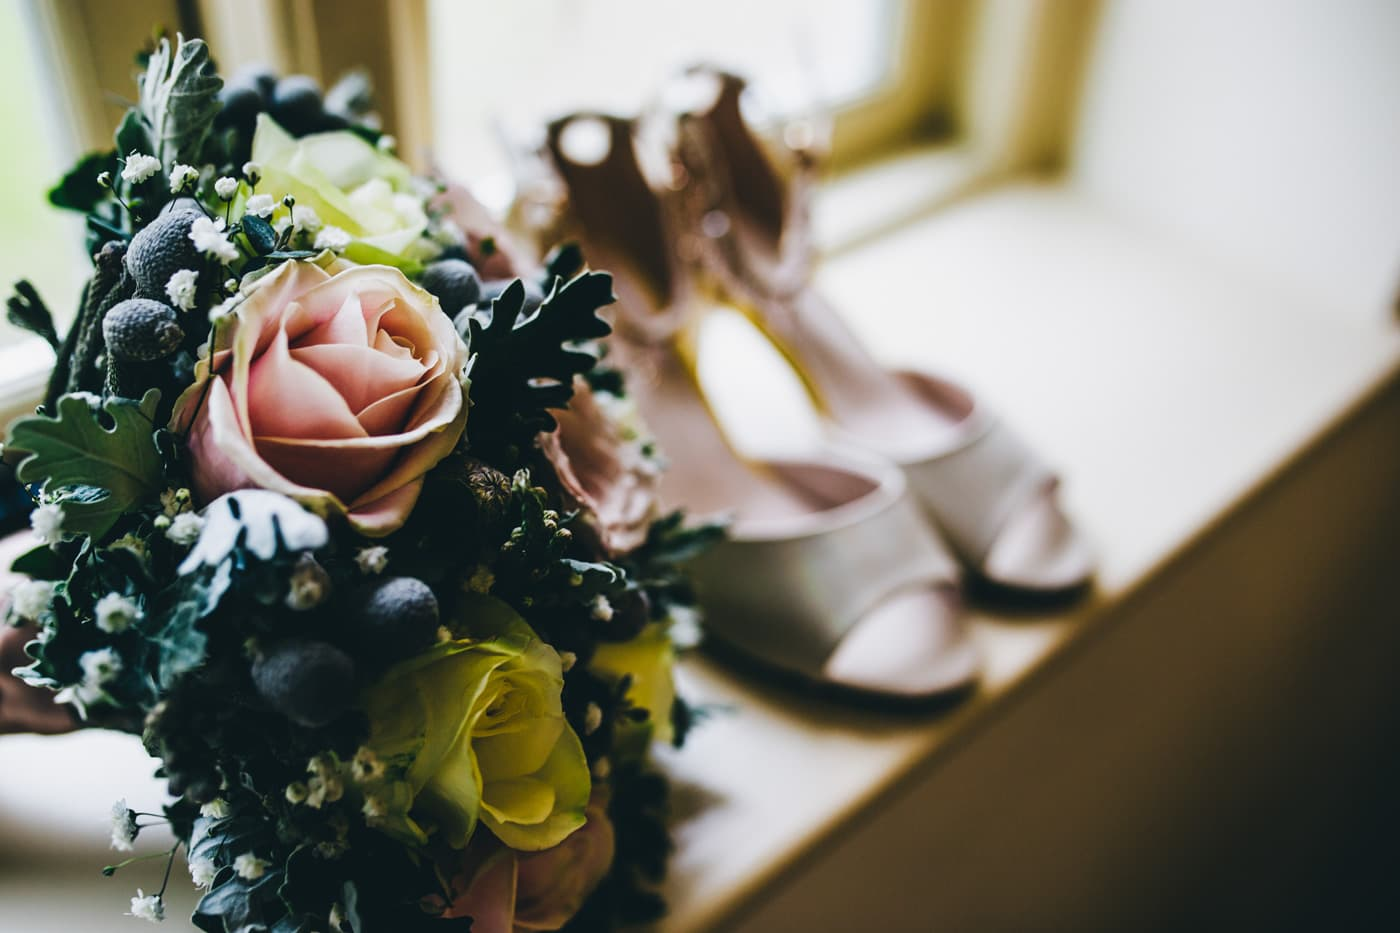 flowers and shoes - wedding details